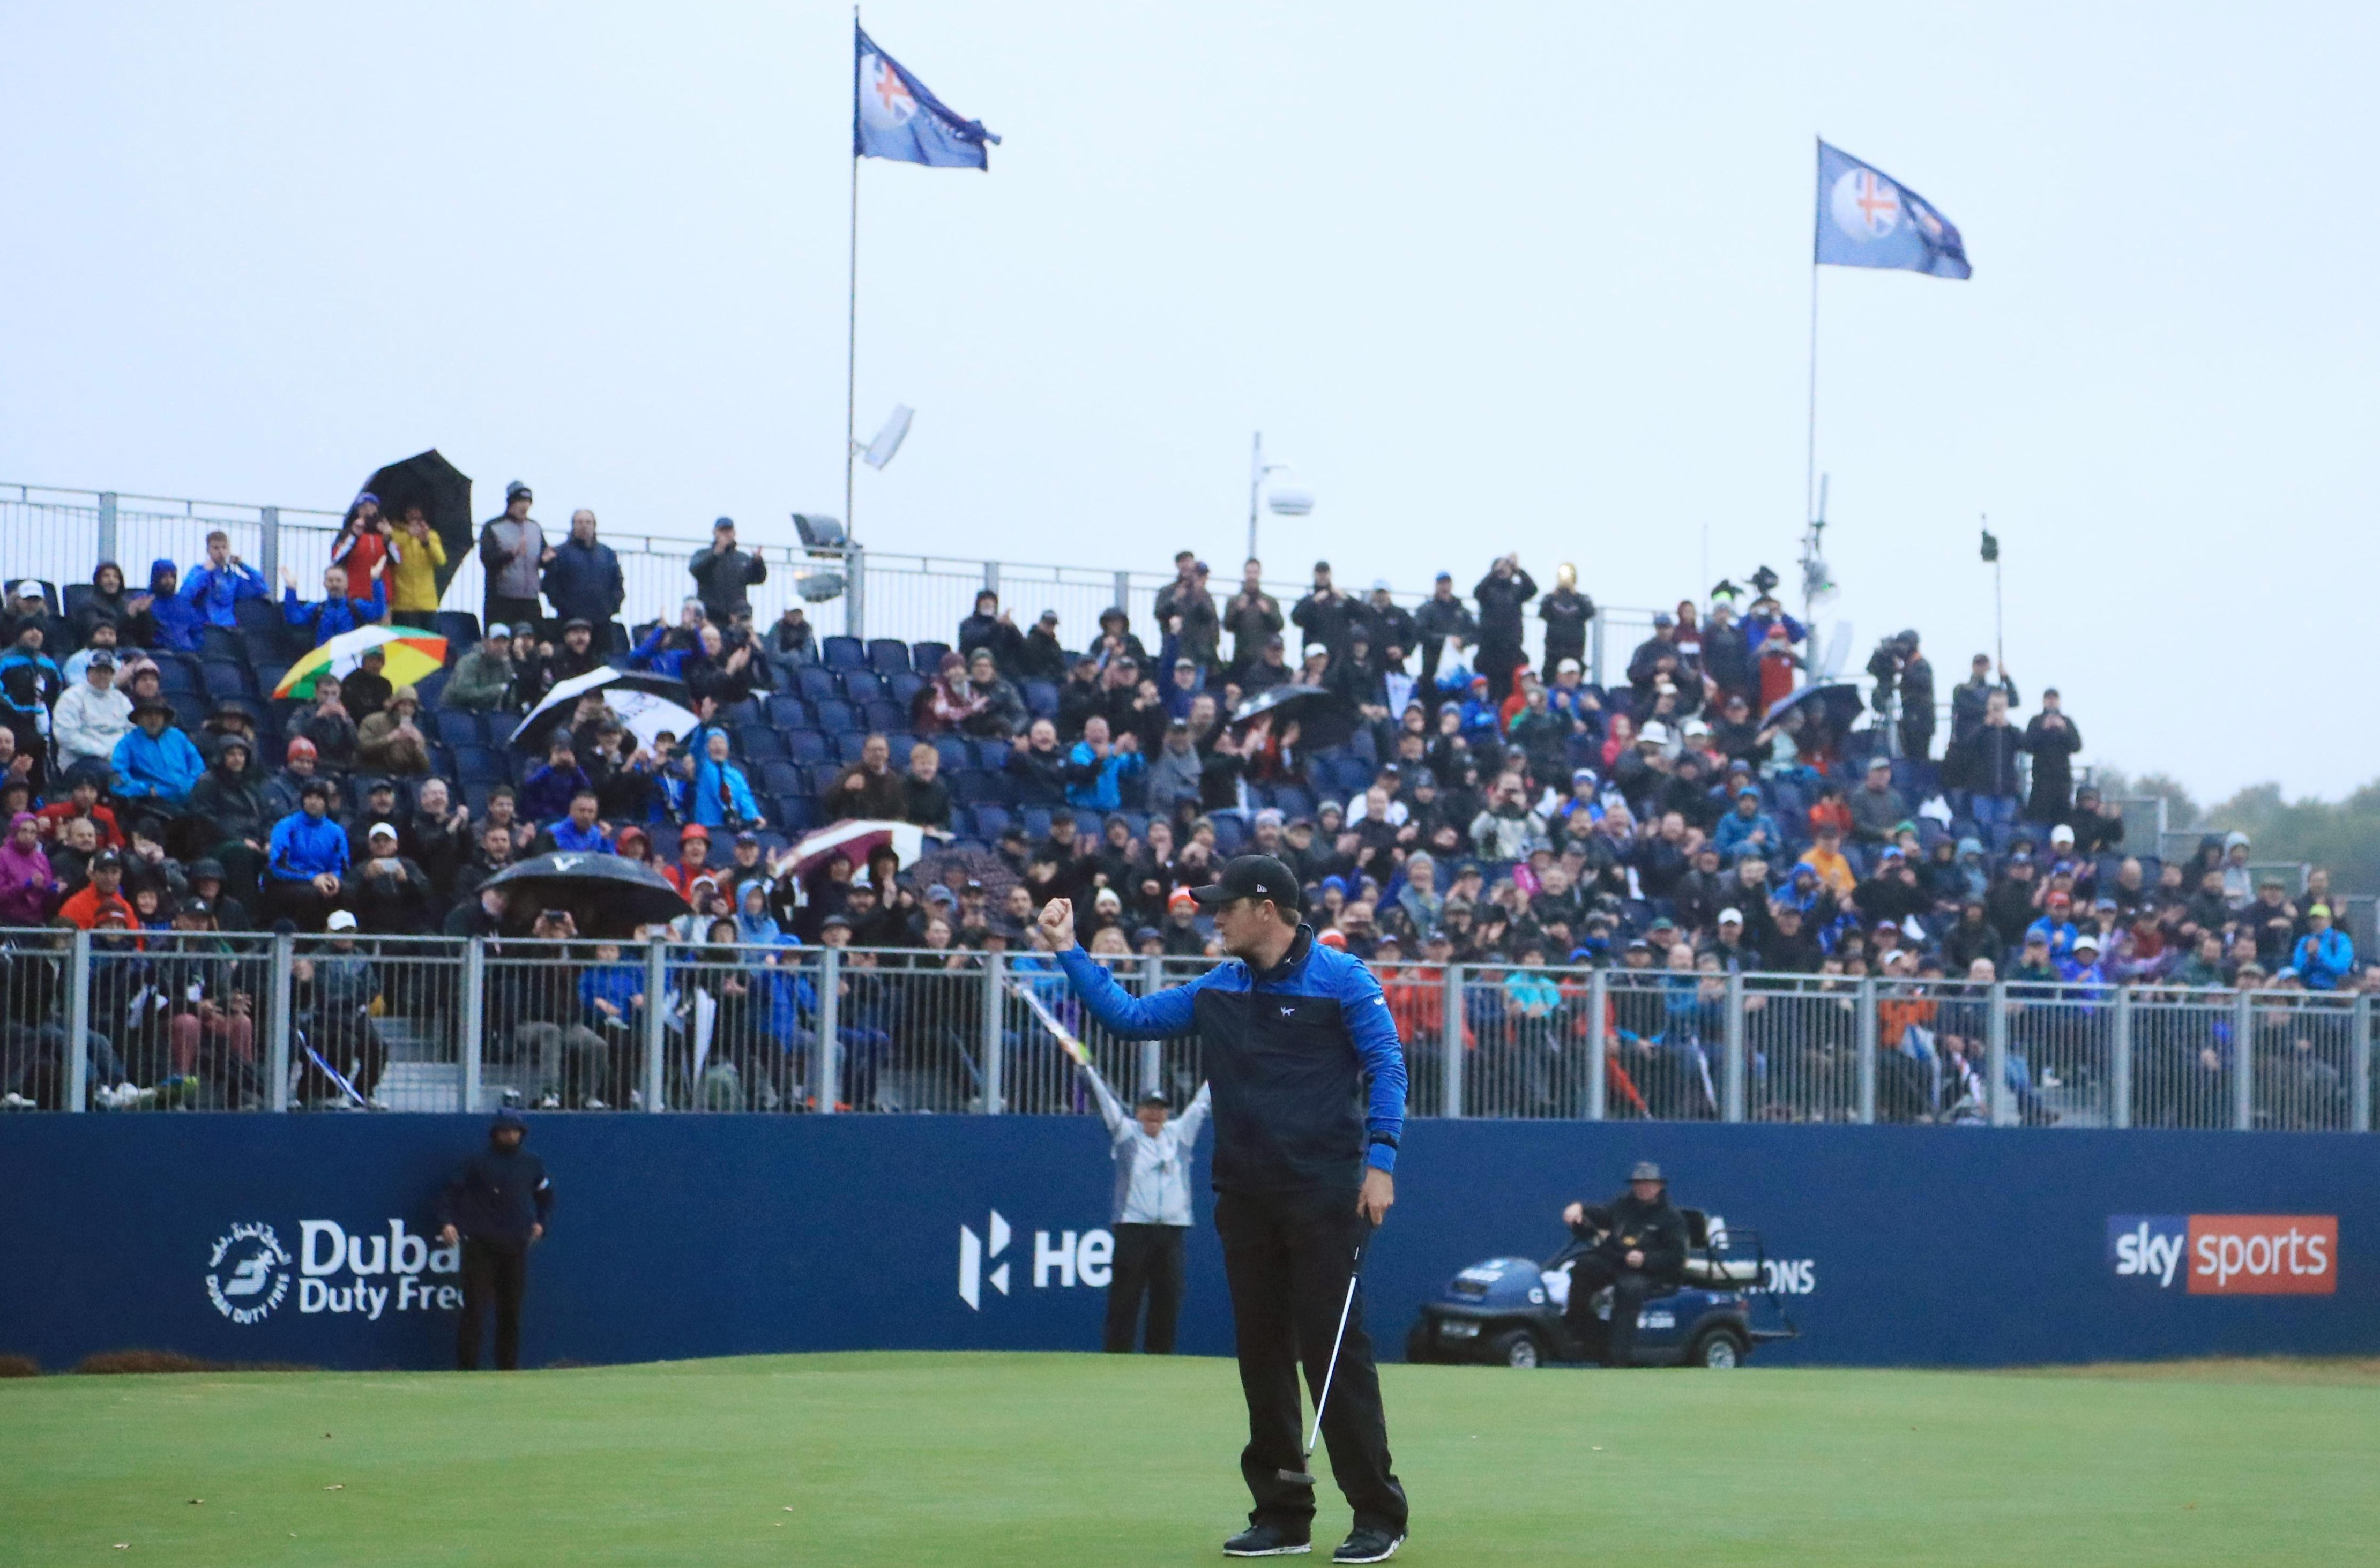 Eddie Pepperell will be world No33 after being No513 less than 18 months ago